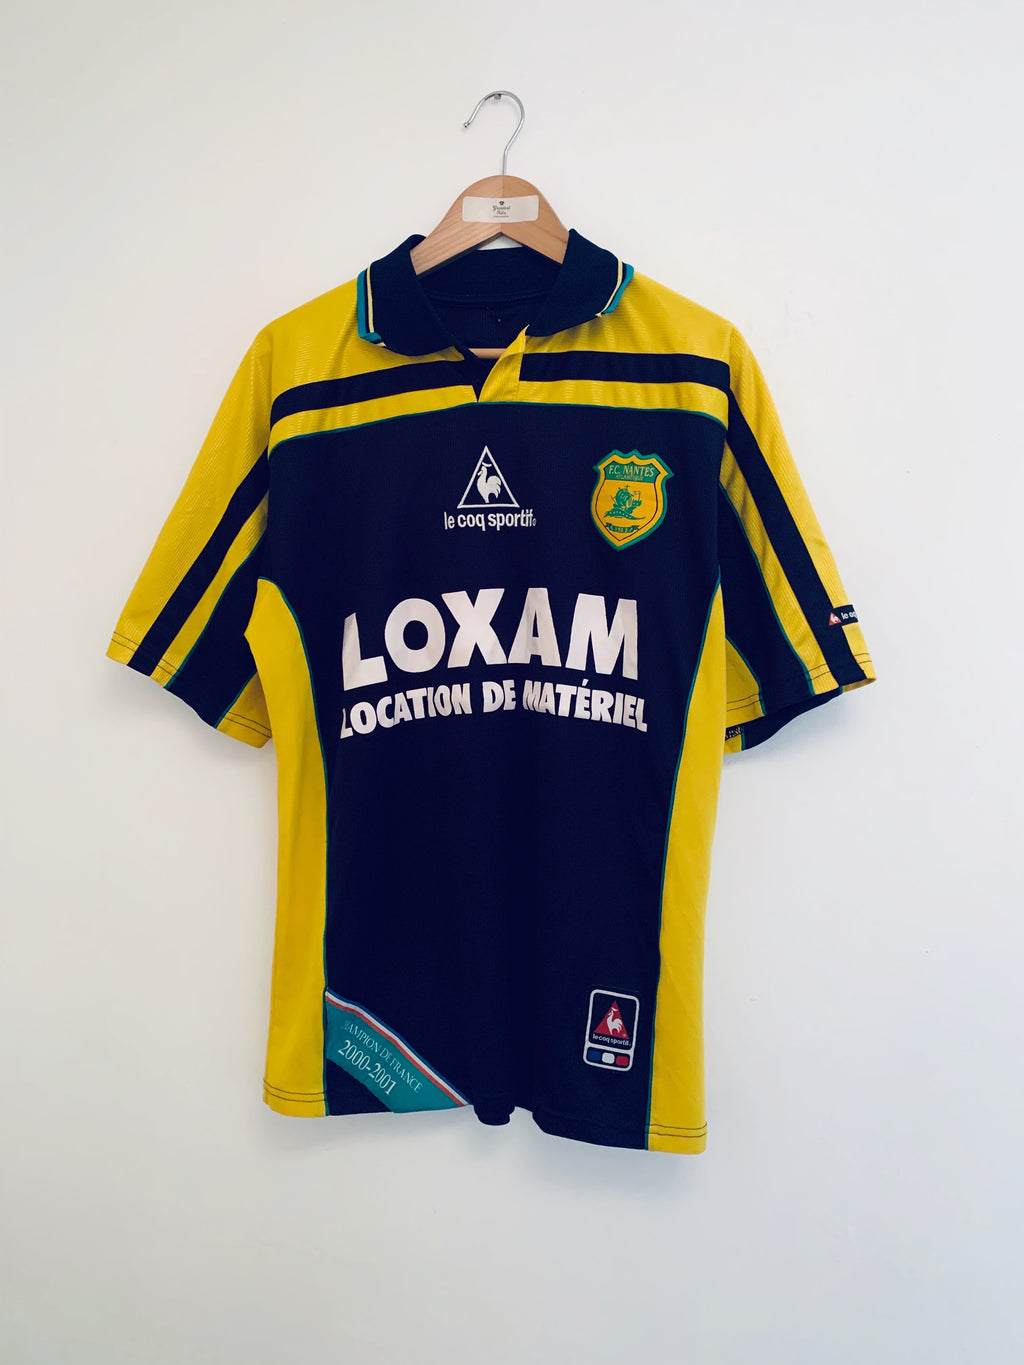 2001/02 Nantes Away Shirt (M) 7.5/10